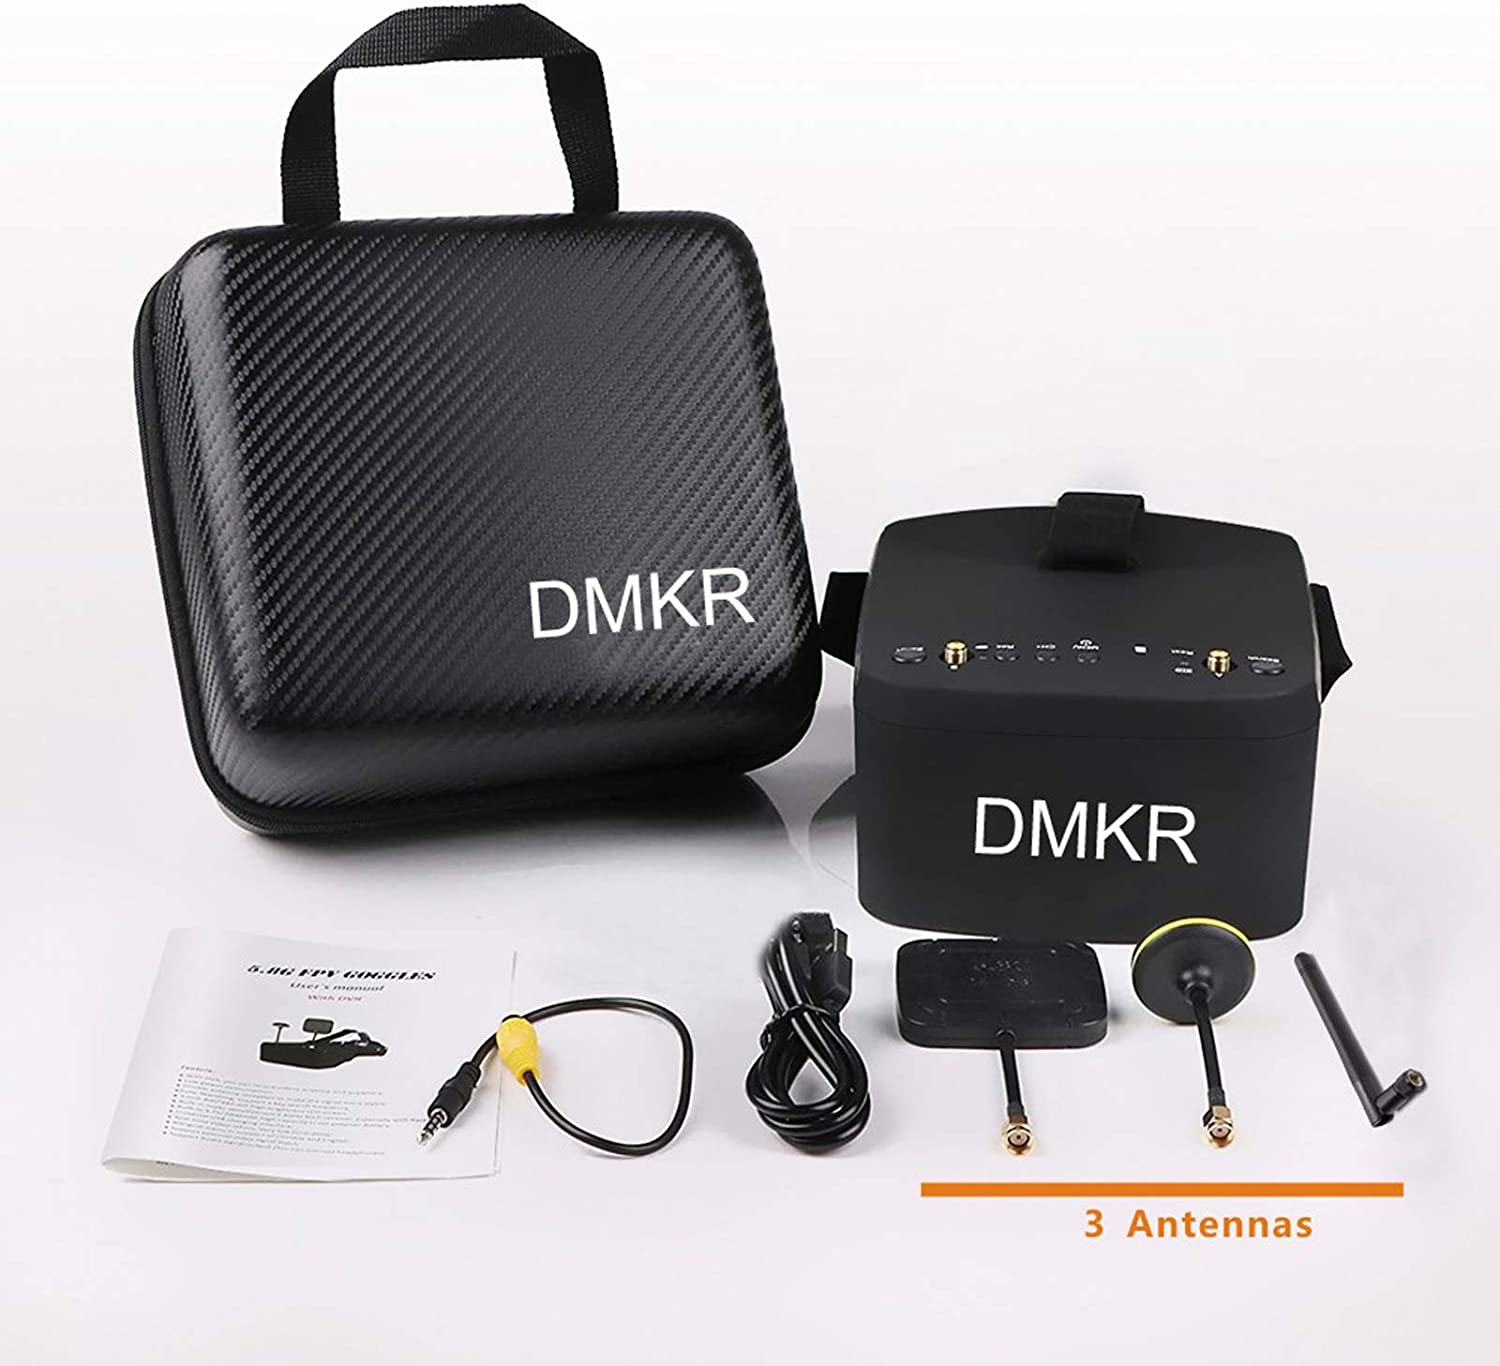 DMKR DR800DPro FPV Goggles with DVR 5.8G 40CH 5 Inch 800x480 HD Video Headset Build in 2000mAh Battery with Three Antennas for FPV Racing Drone Quadcopters